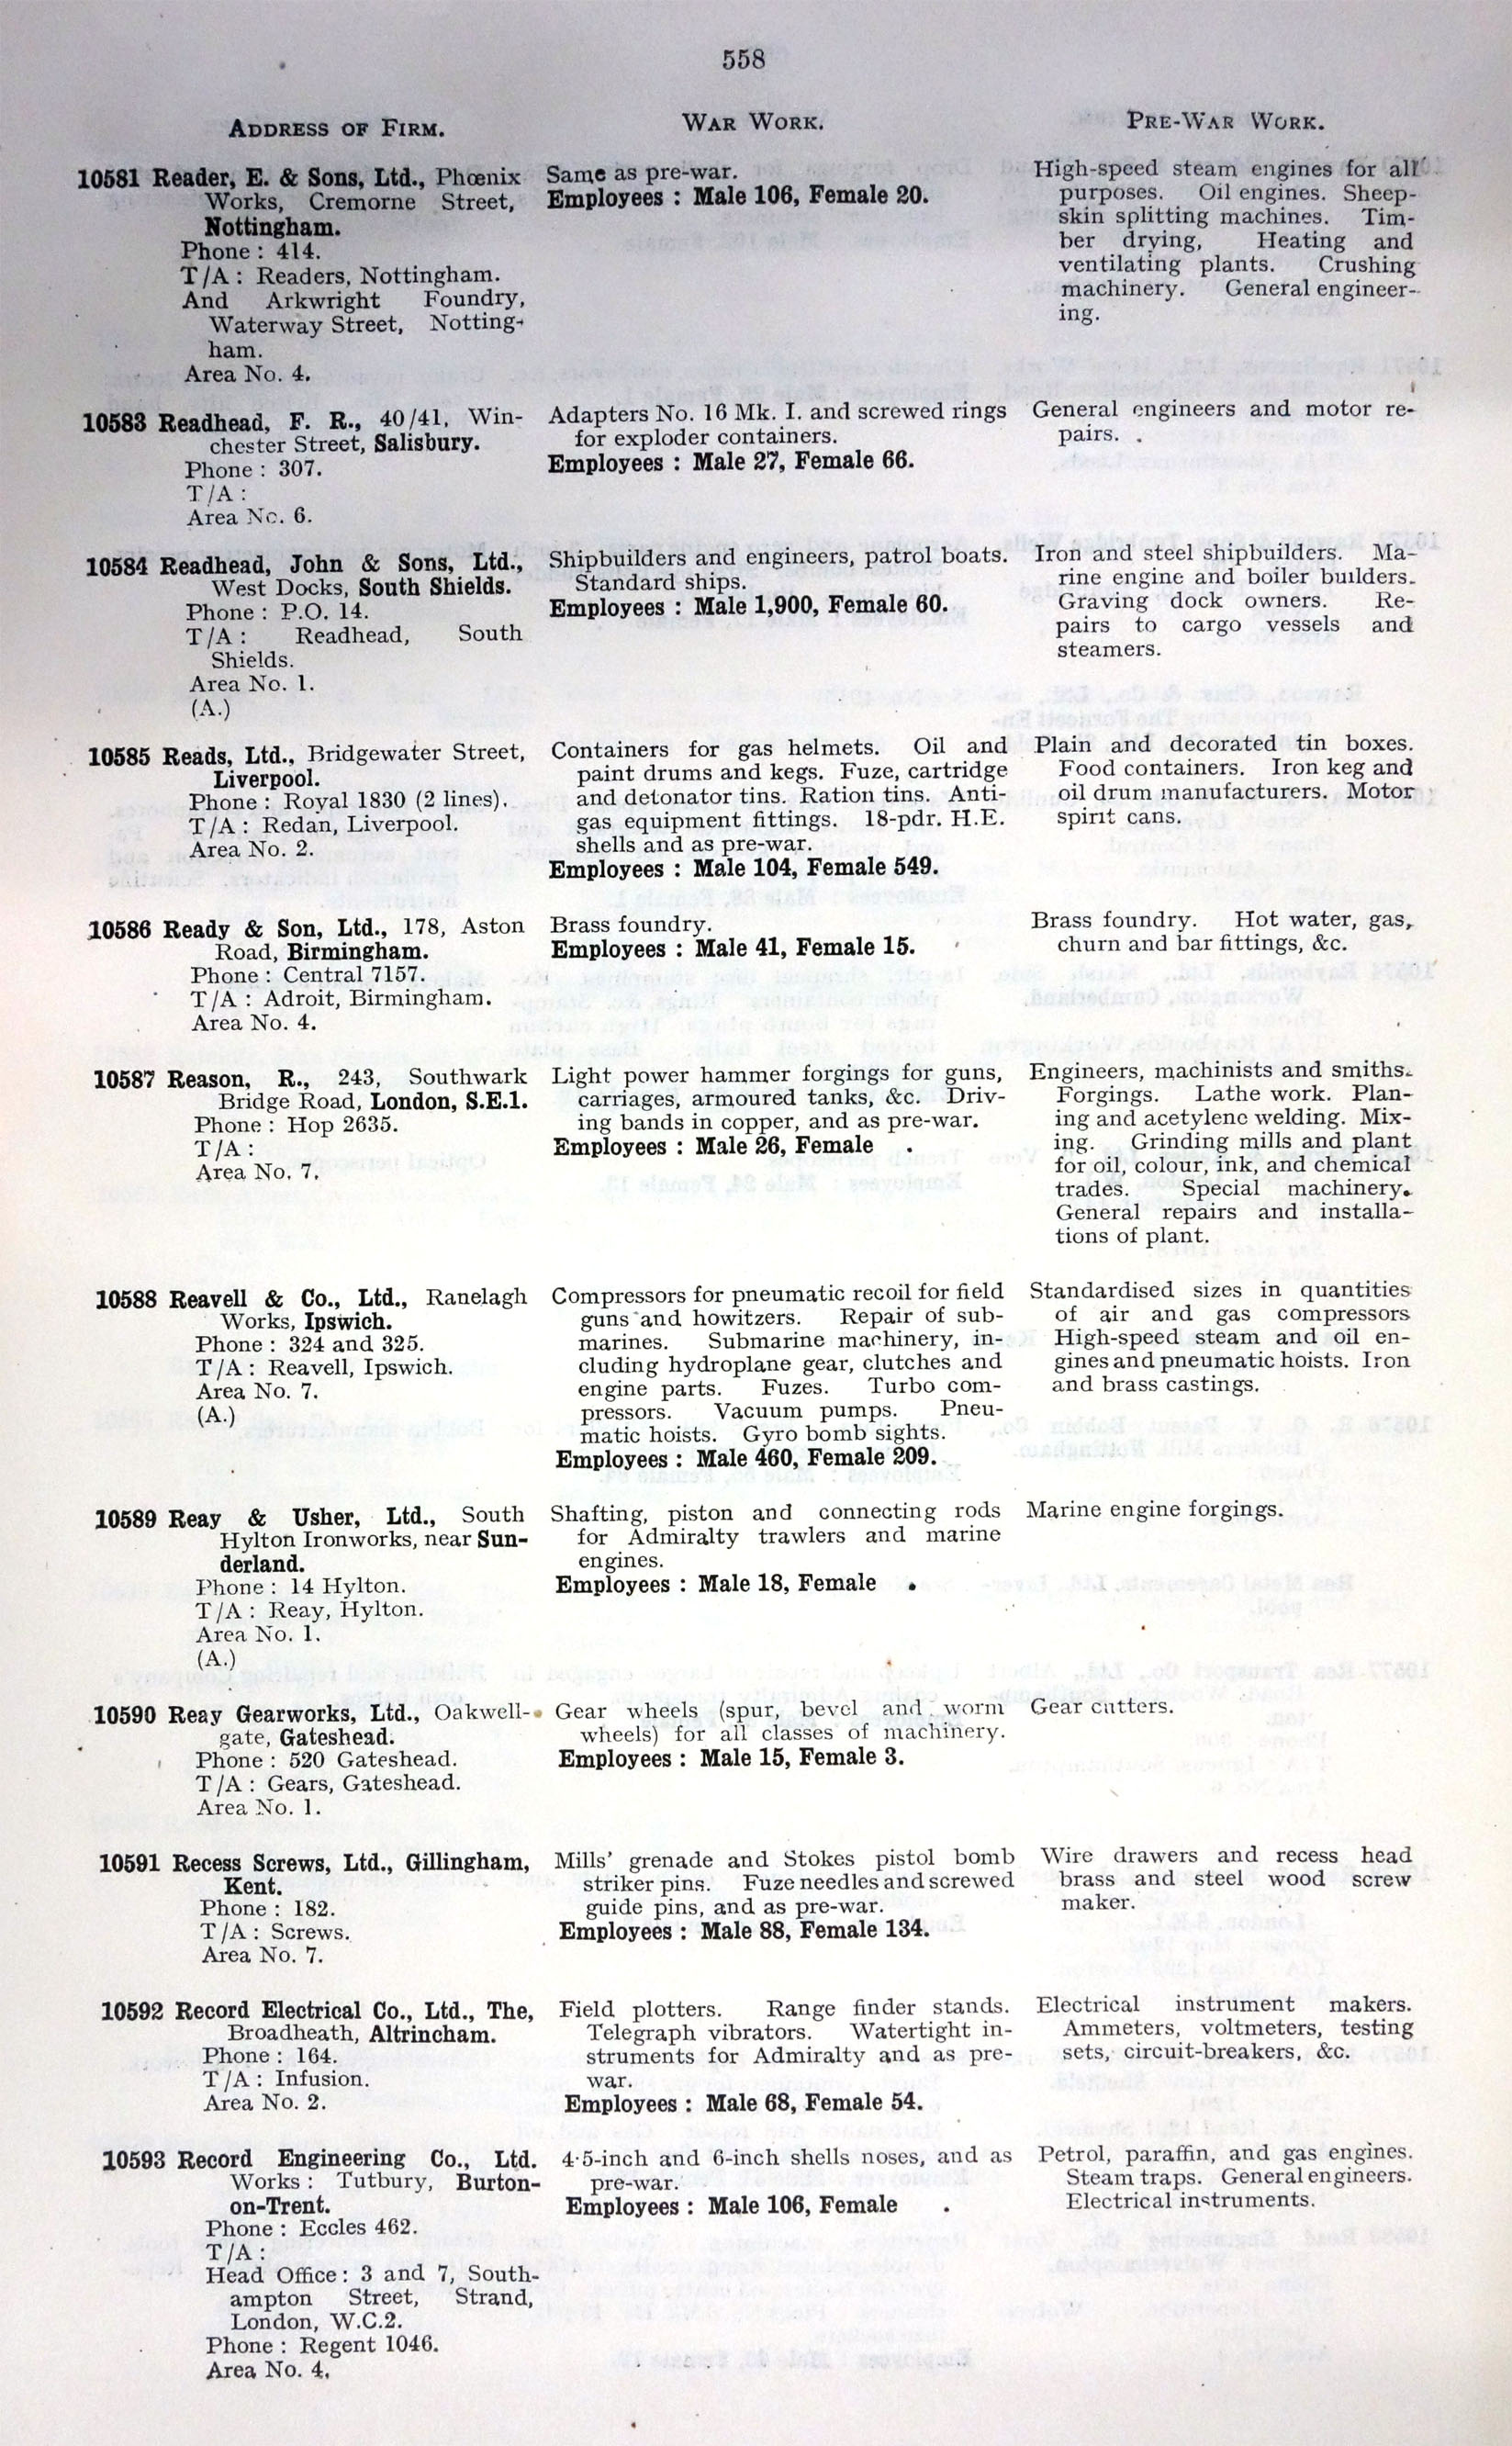 1918 Directory of Manufacturers in Engineering and Allied Trades ...